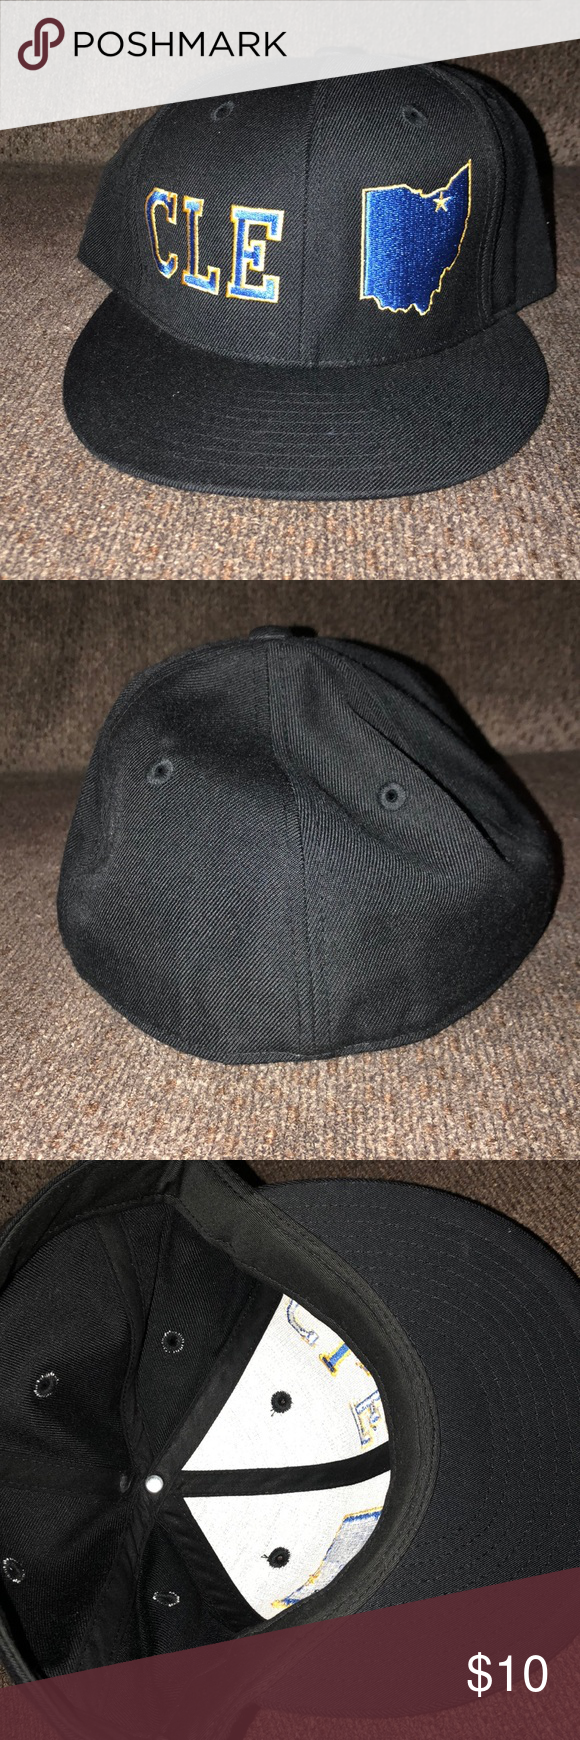 Men S Lids Cleveland Fitted Hat Fitted Hats Clothes Design Fashion Design